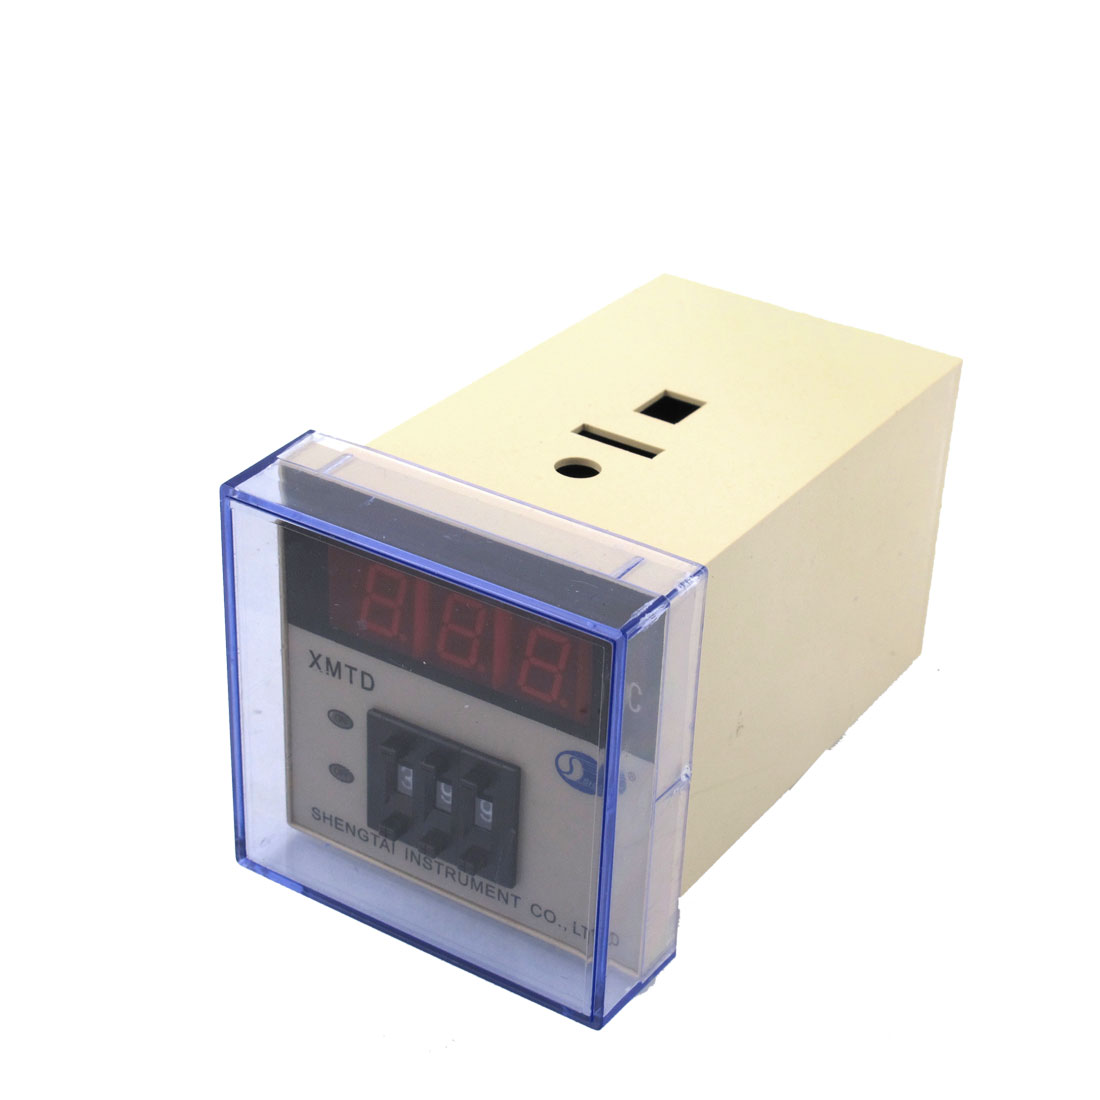 0-399C LED Digital Display Temperature Controller Control Meter XMTD-2001